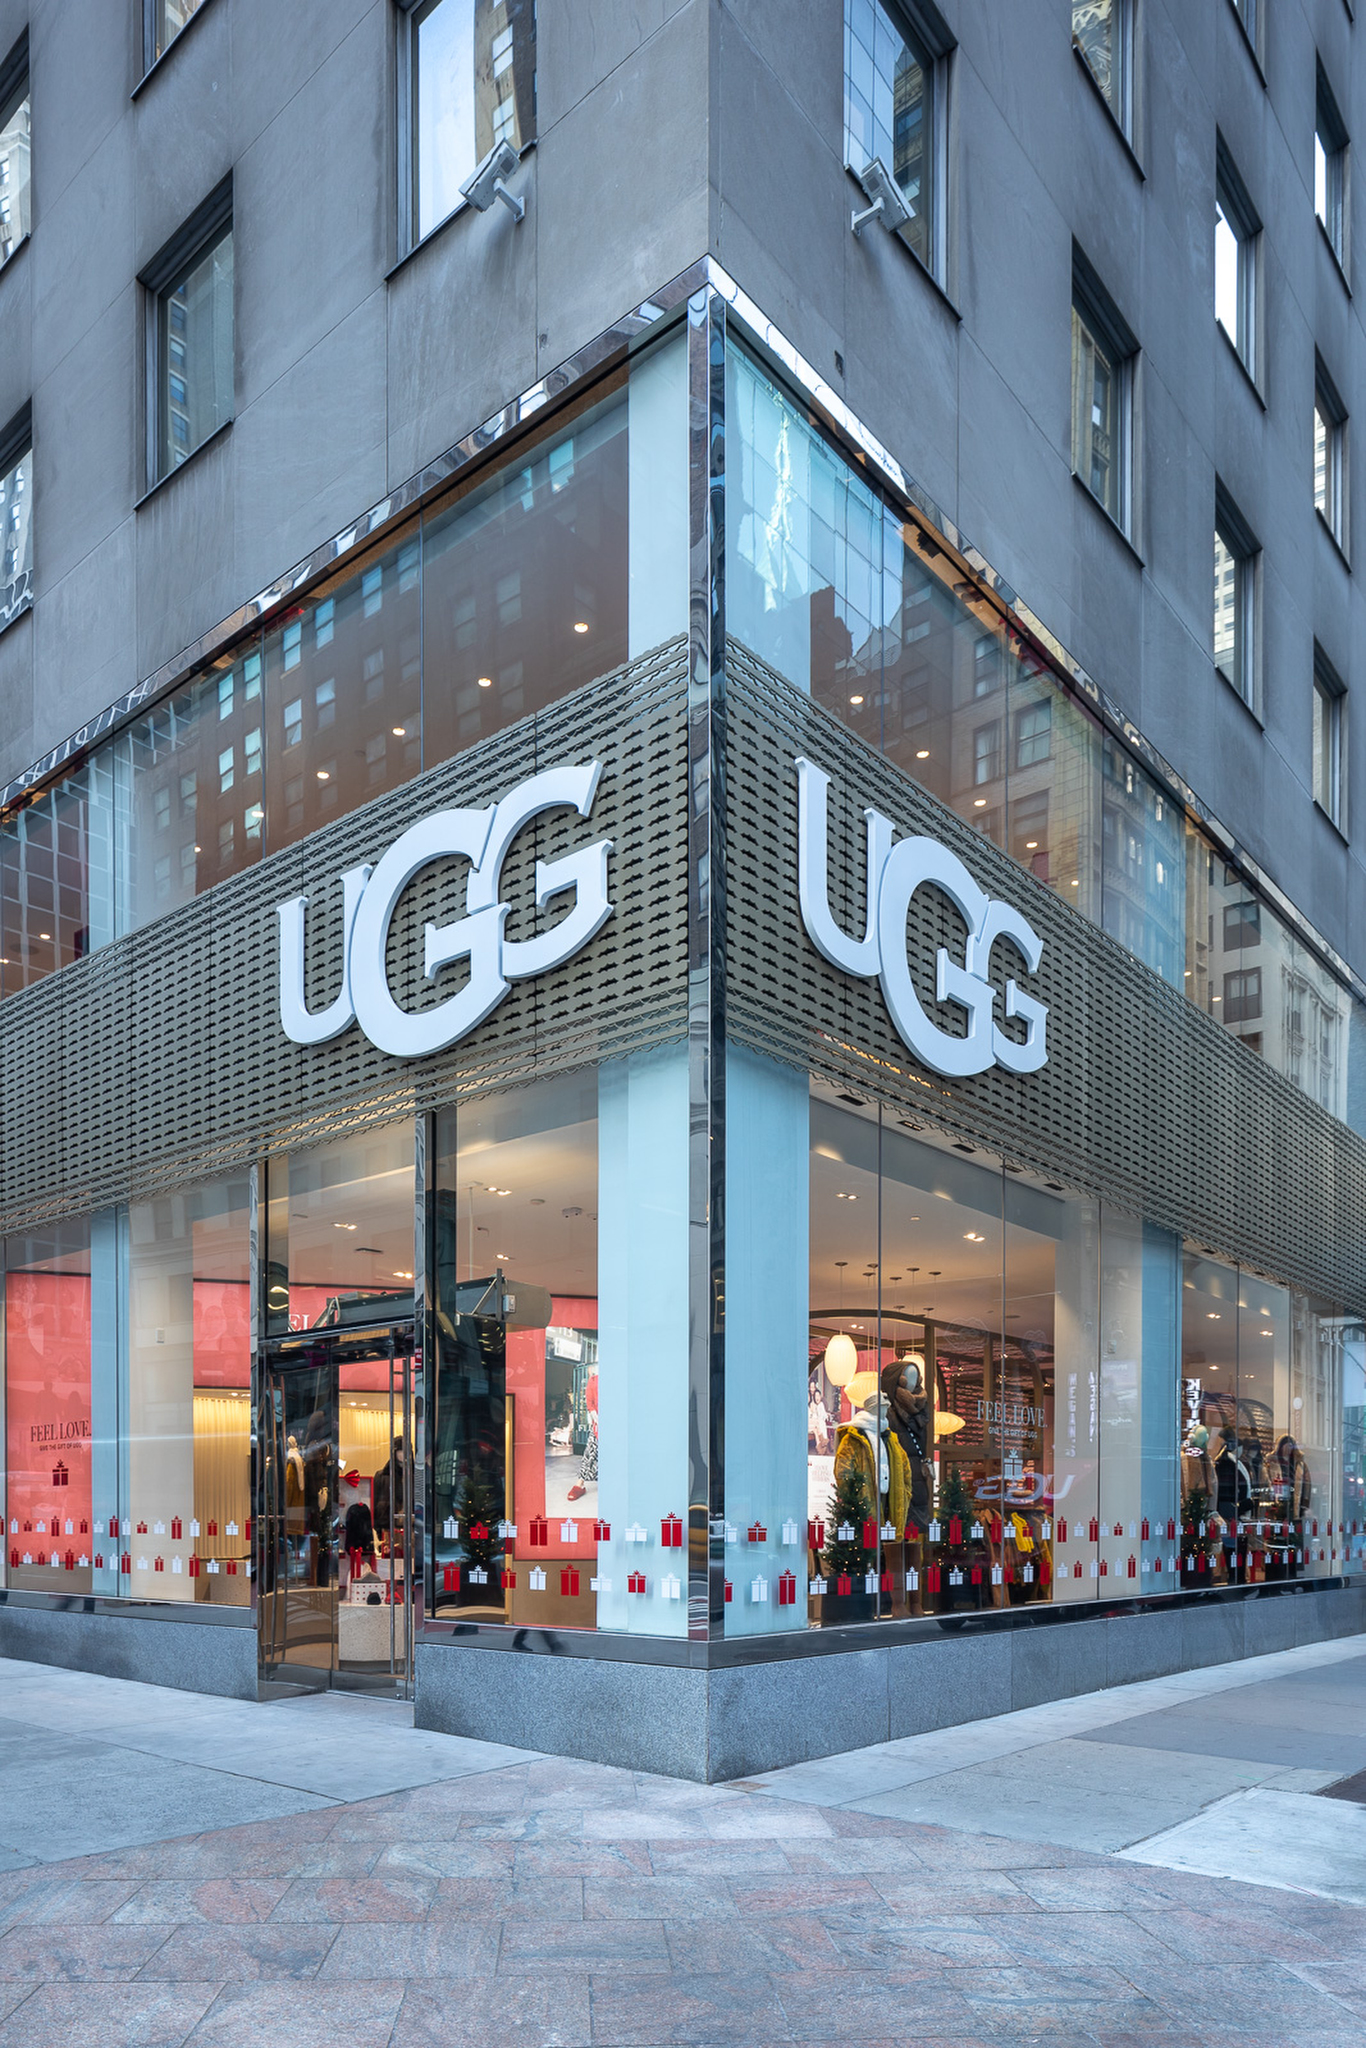 A look at new Ugg store.